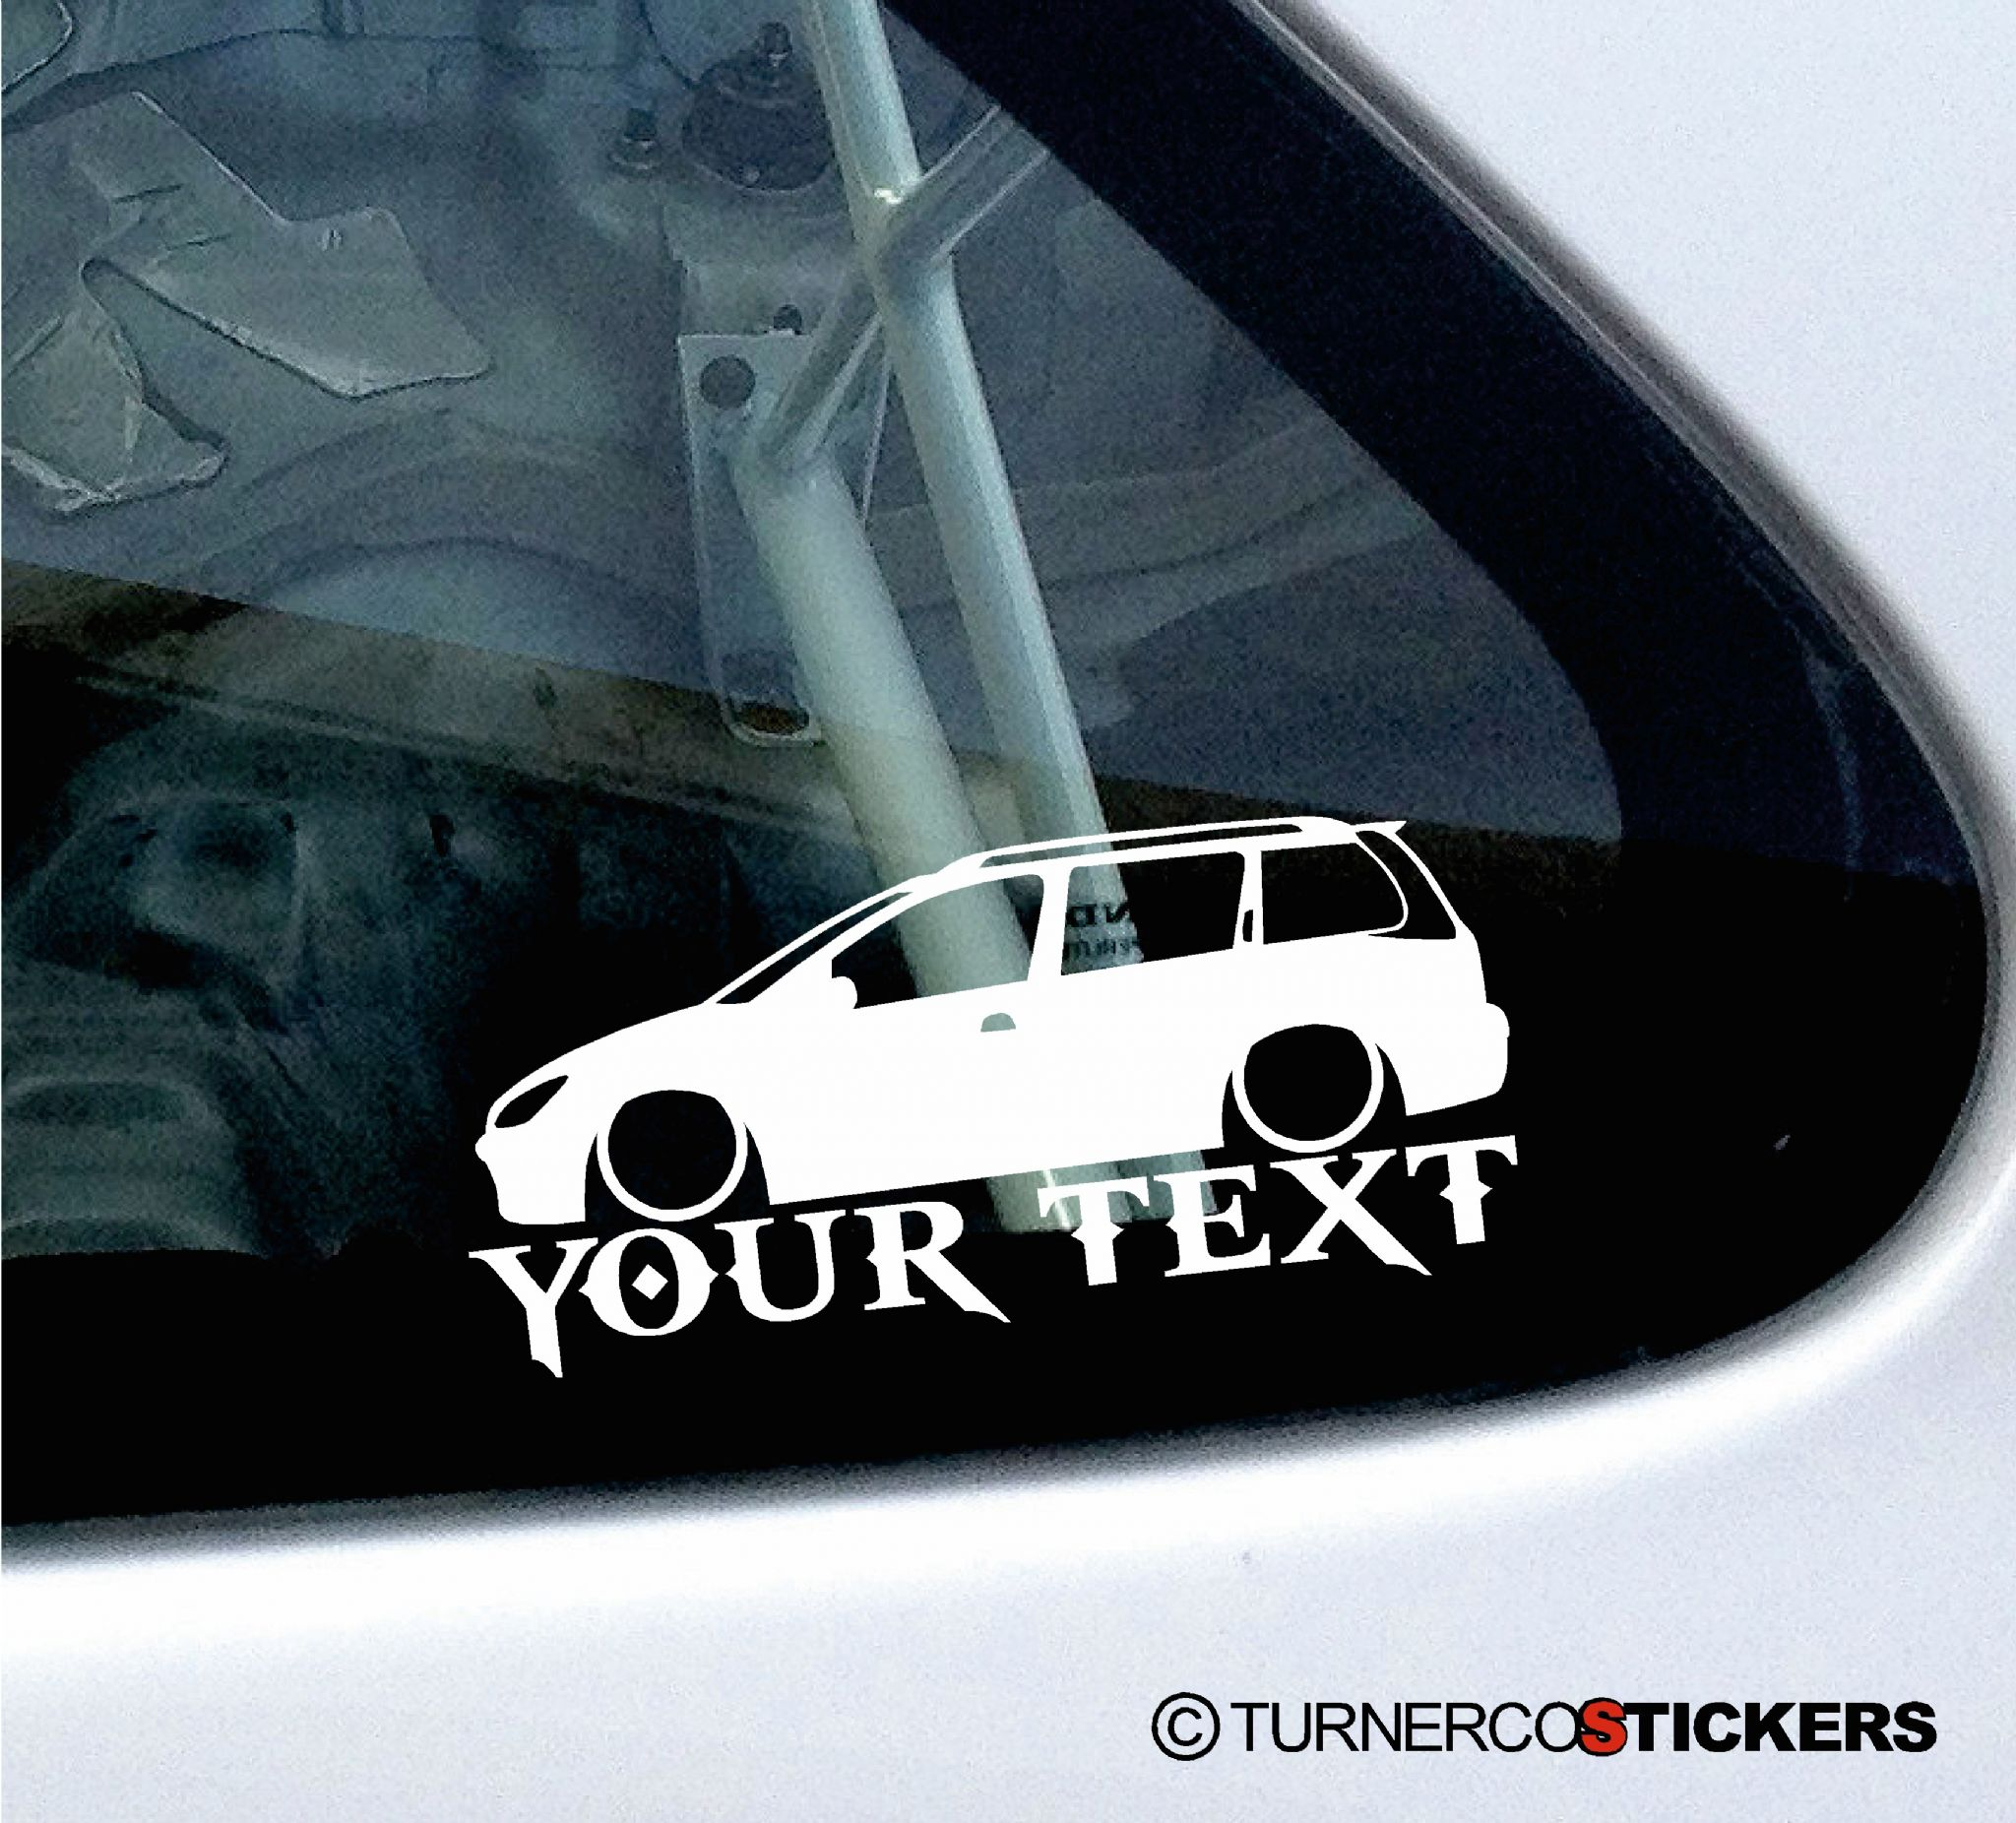 2x custom your text lowered car stickers peugeot 206 sw hdi estate wagon